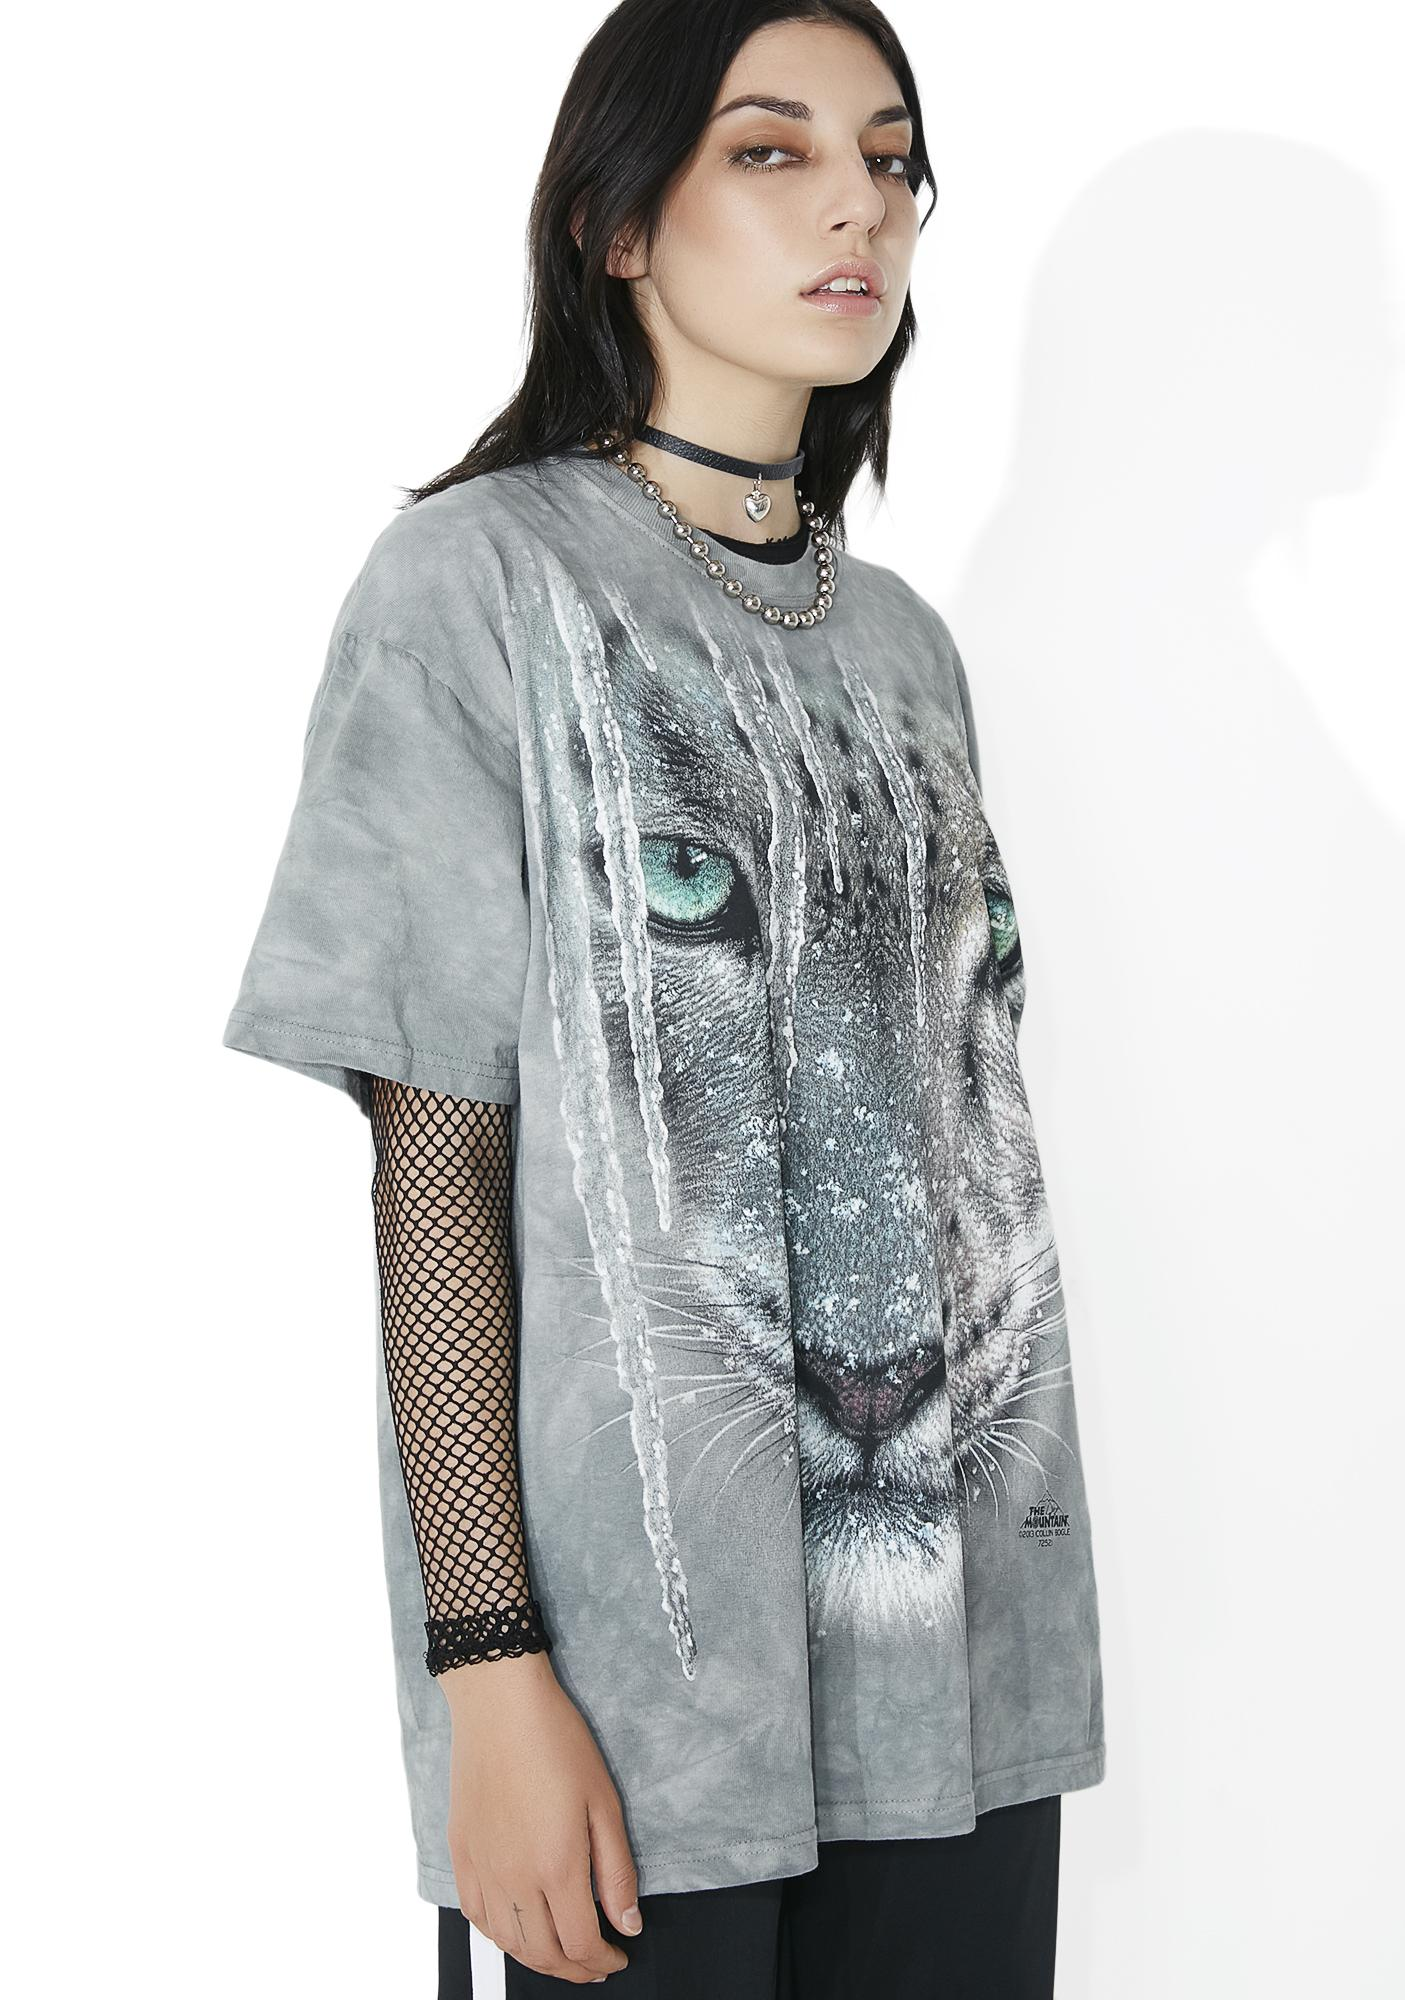 Cold Blooded Fury Tee